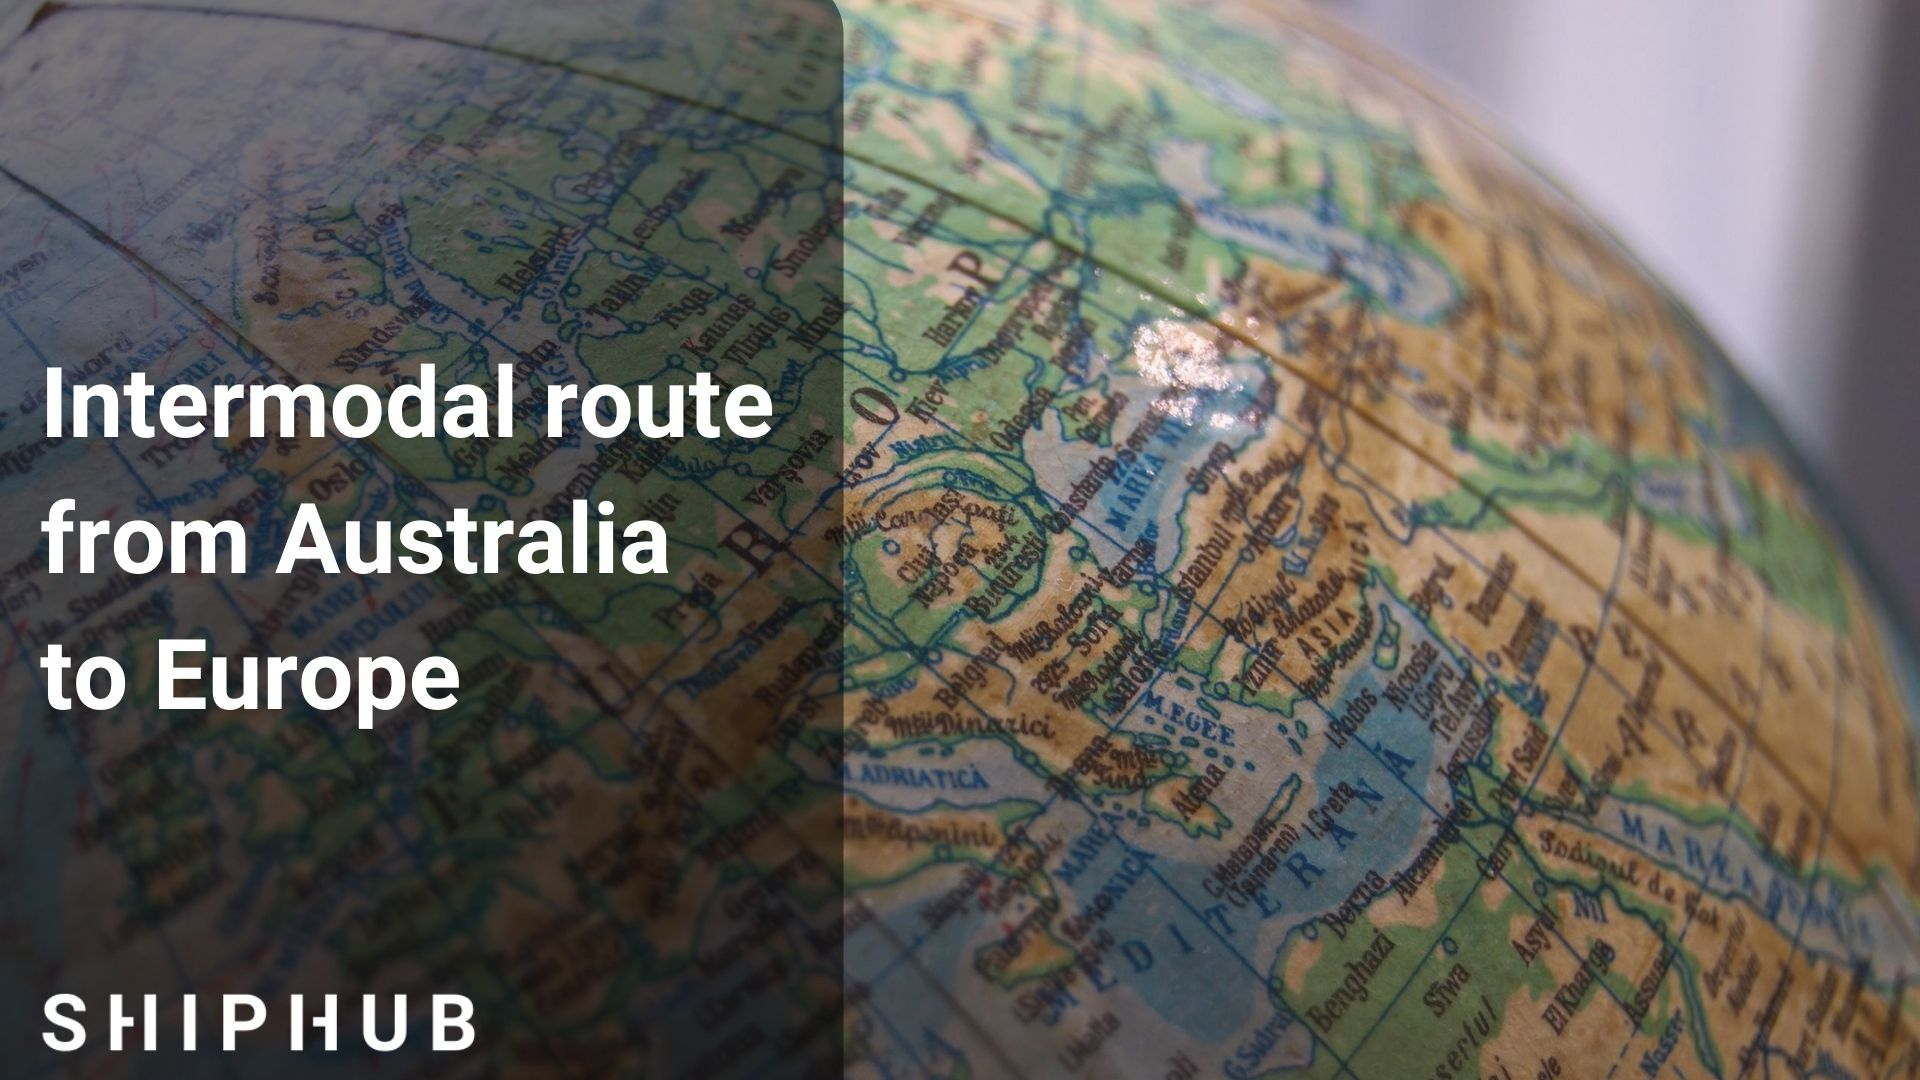 Intermodal route from Australia to Europe